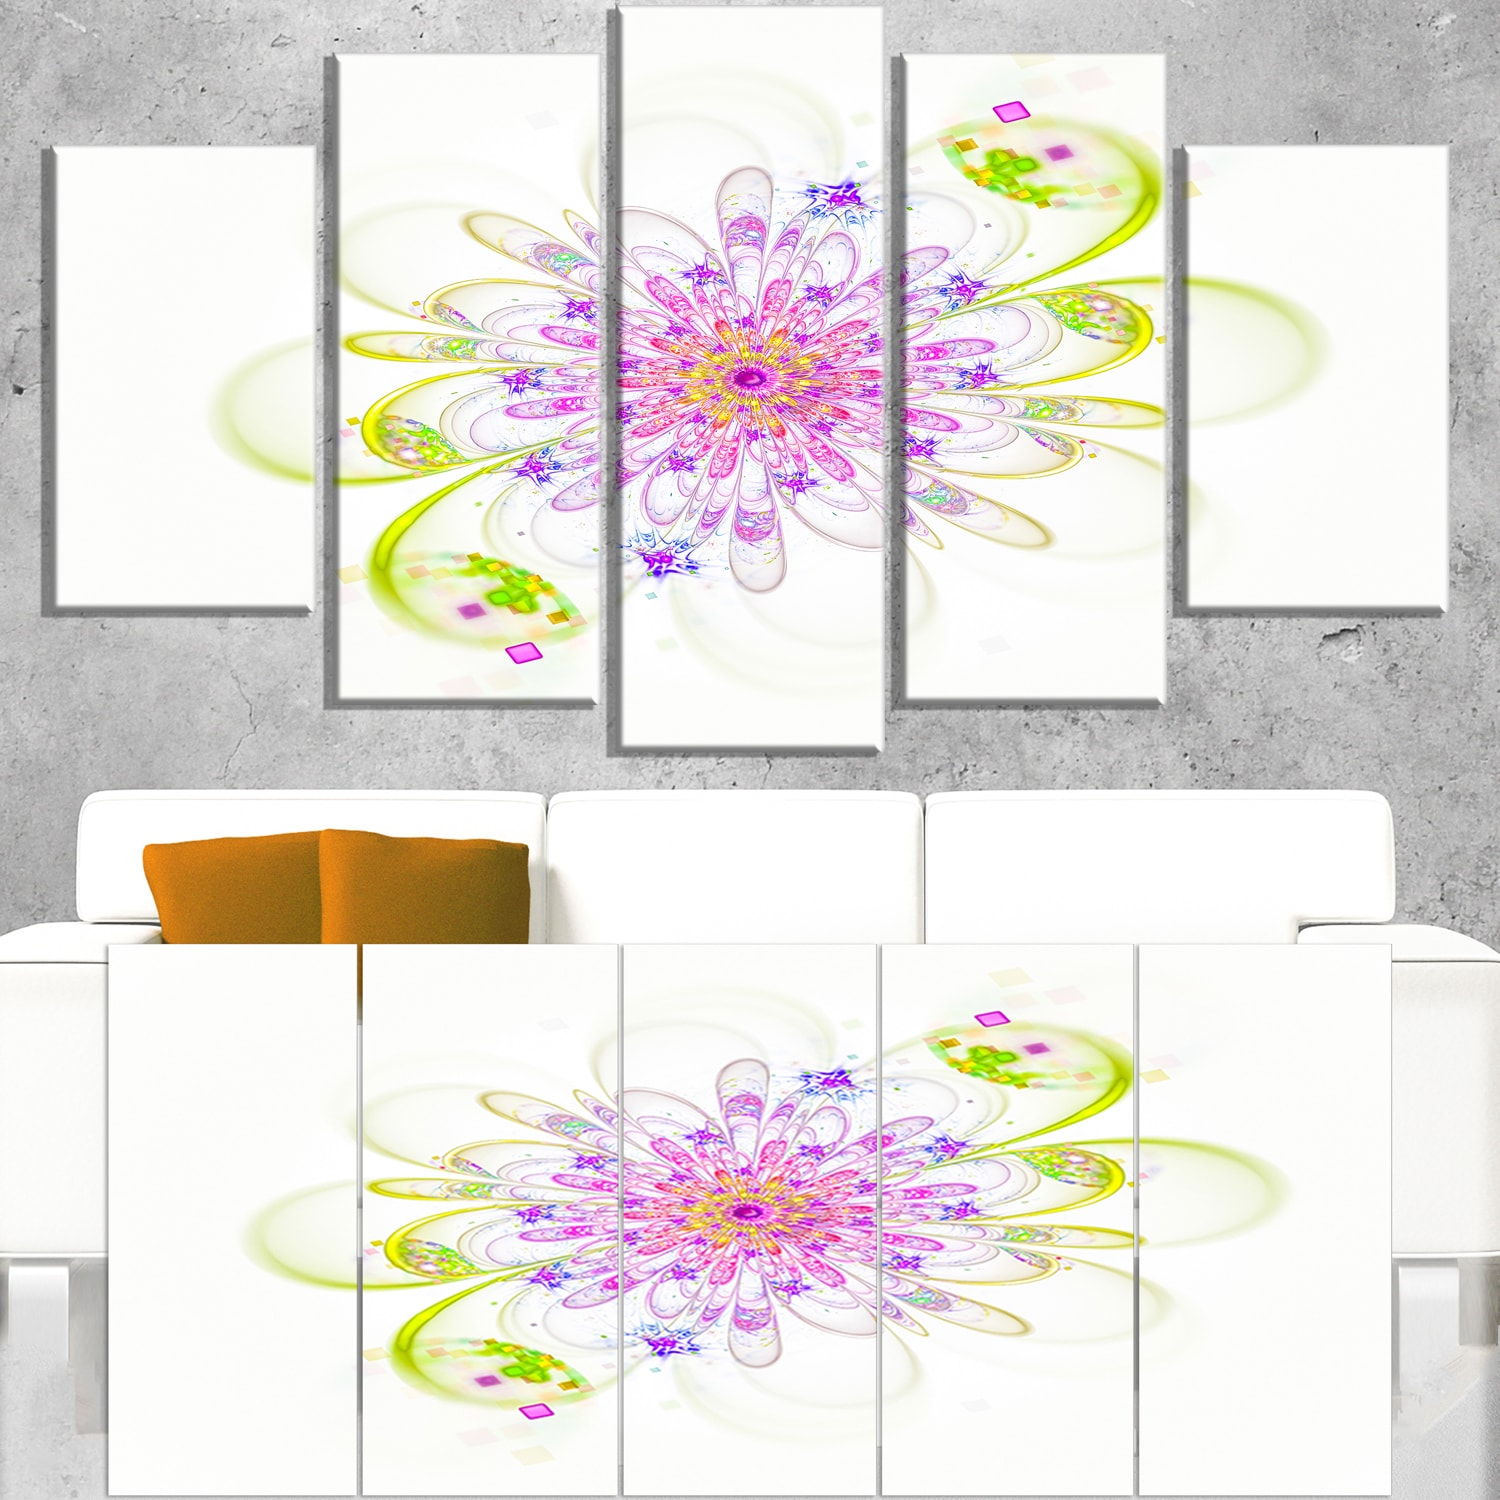 DESIGN ART Purple Green Glowing Fractal Flower - Floral Canvas Artwork Print 60 in. wide x 32 in. high - 5 Panels Diamond Shape